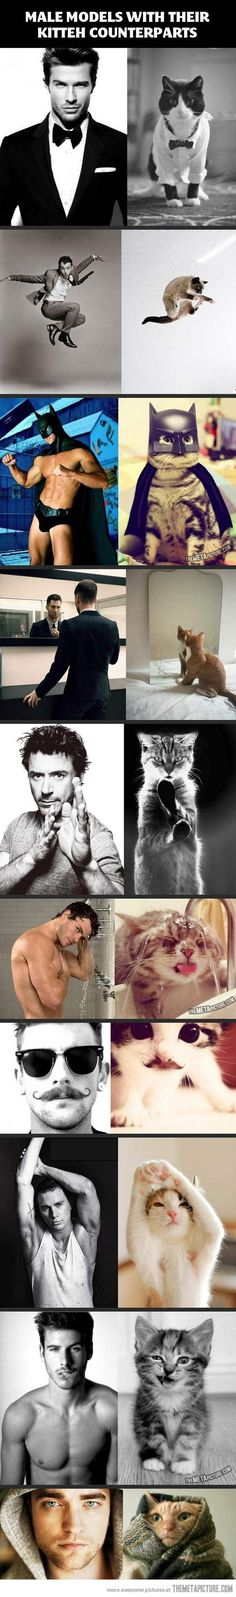 Male models and kitteh counterparts